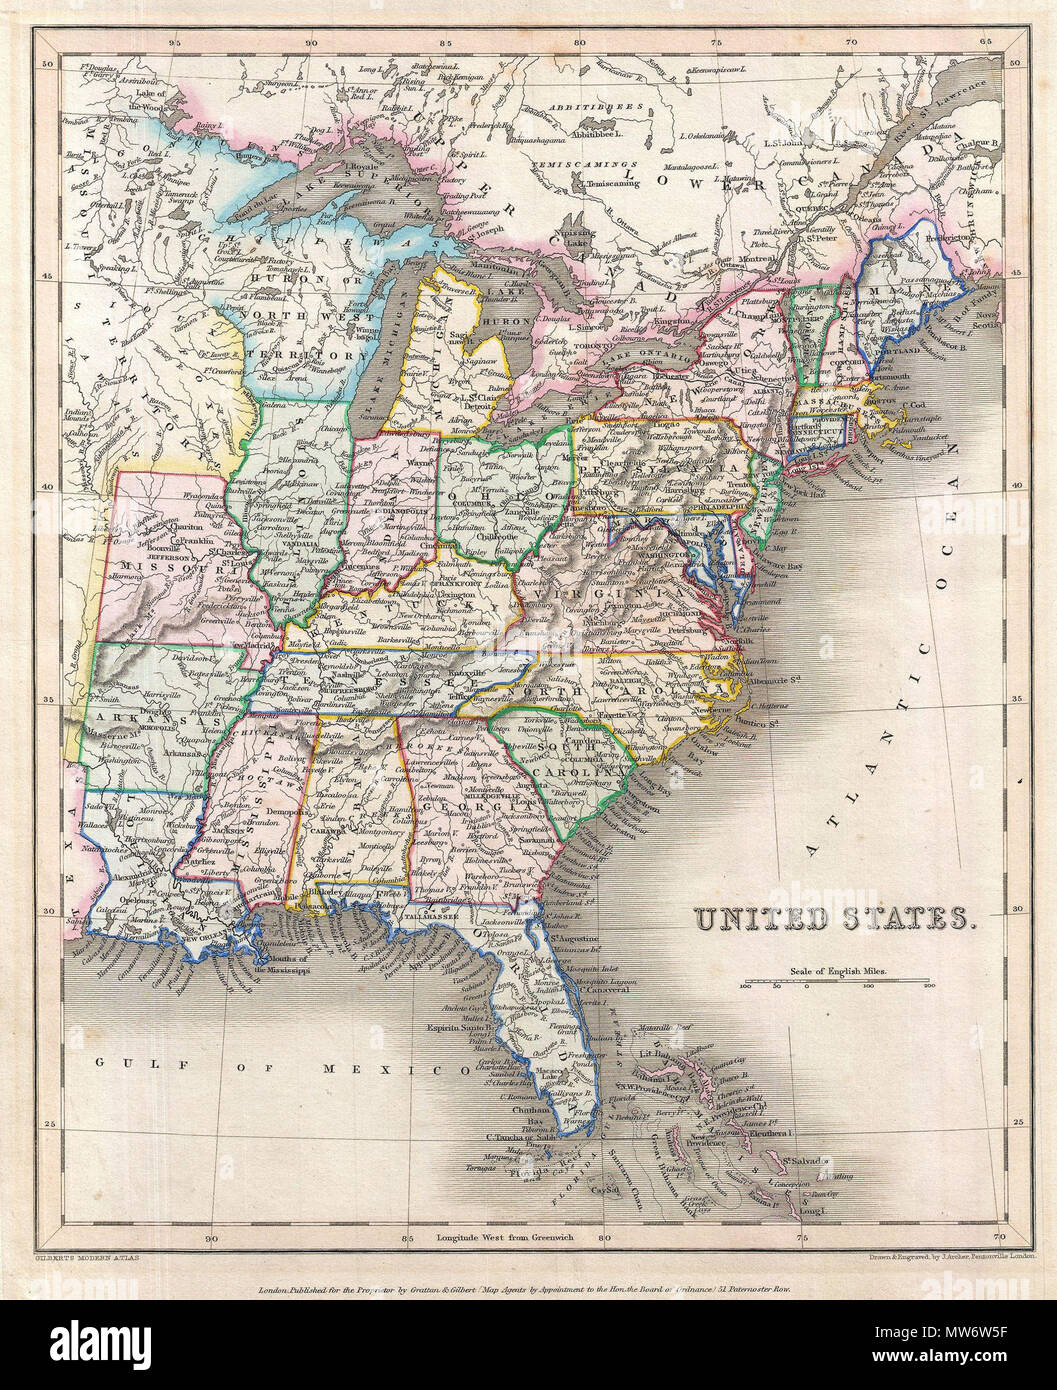 United States. English: An unusual and colorful map of the ...